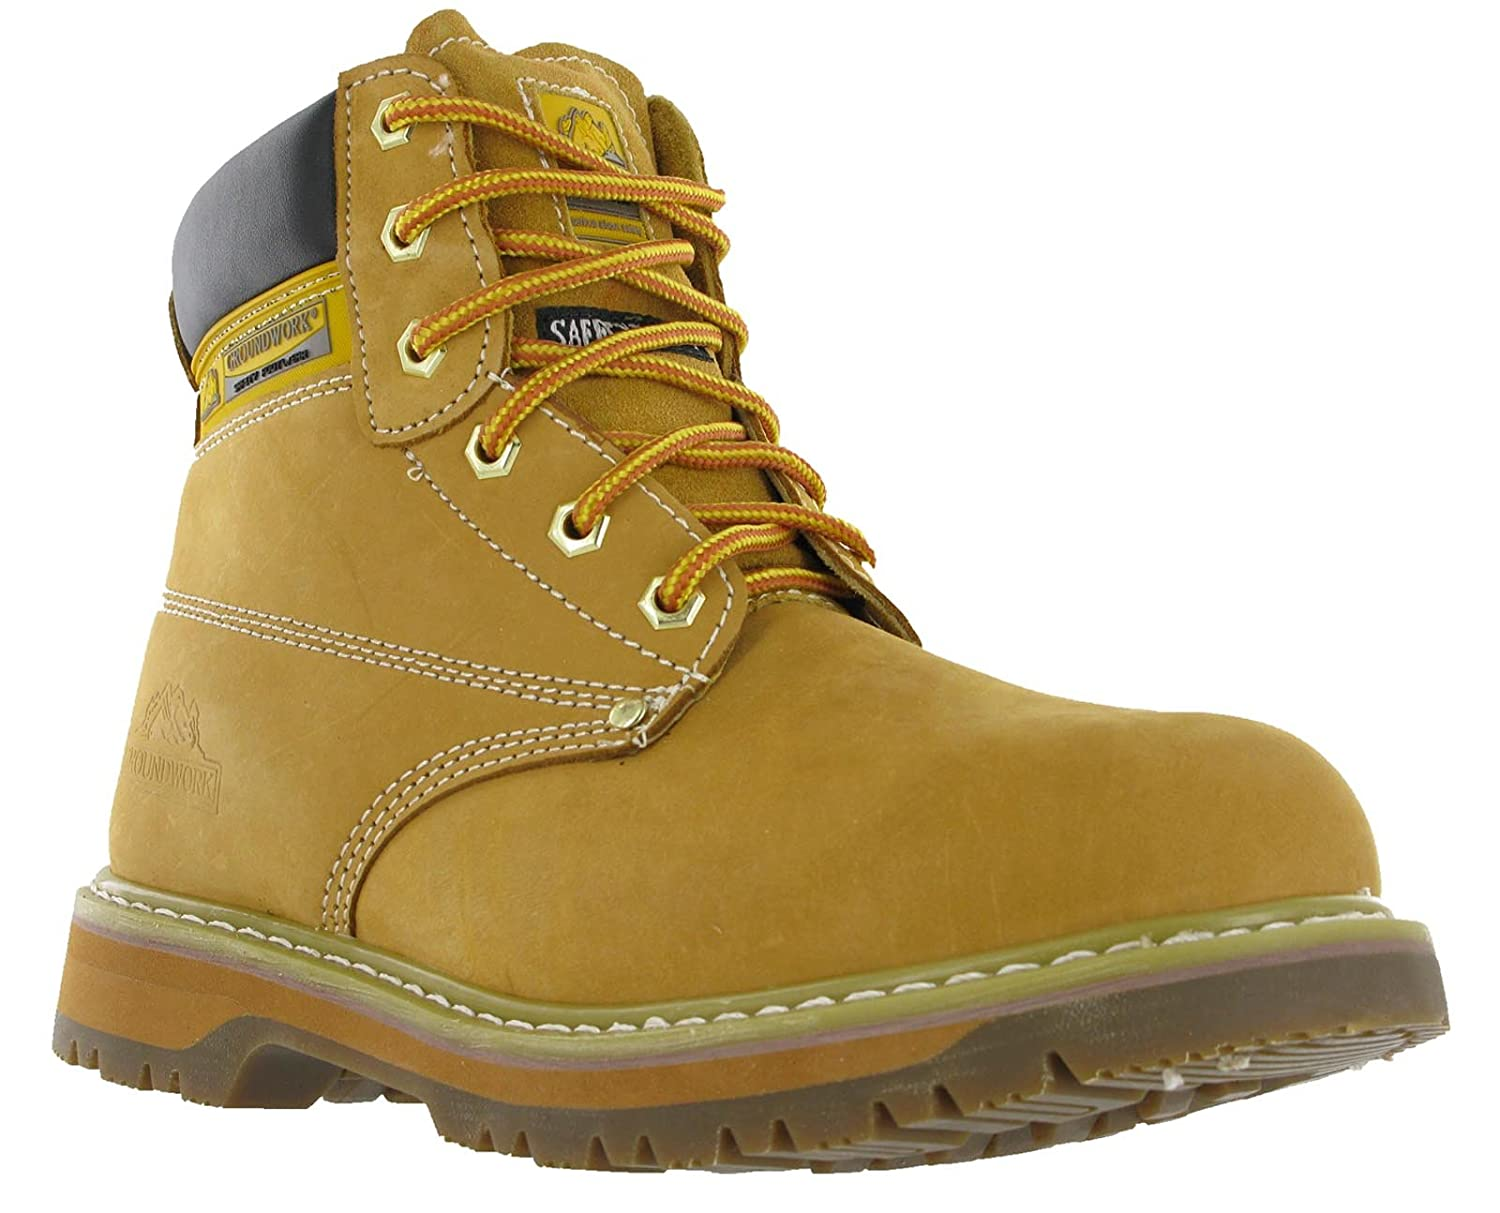 dde2f506916 Groundwork Mens SK21 Leather Lace Safety Steel Toe Cap Work Boots ...